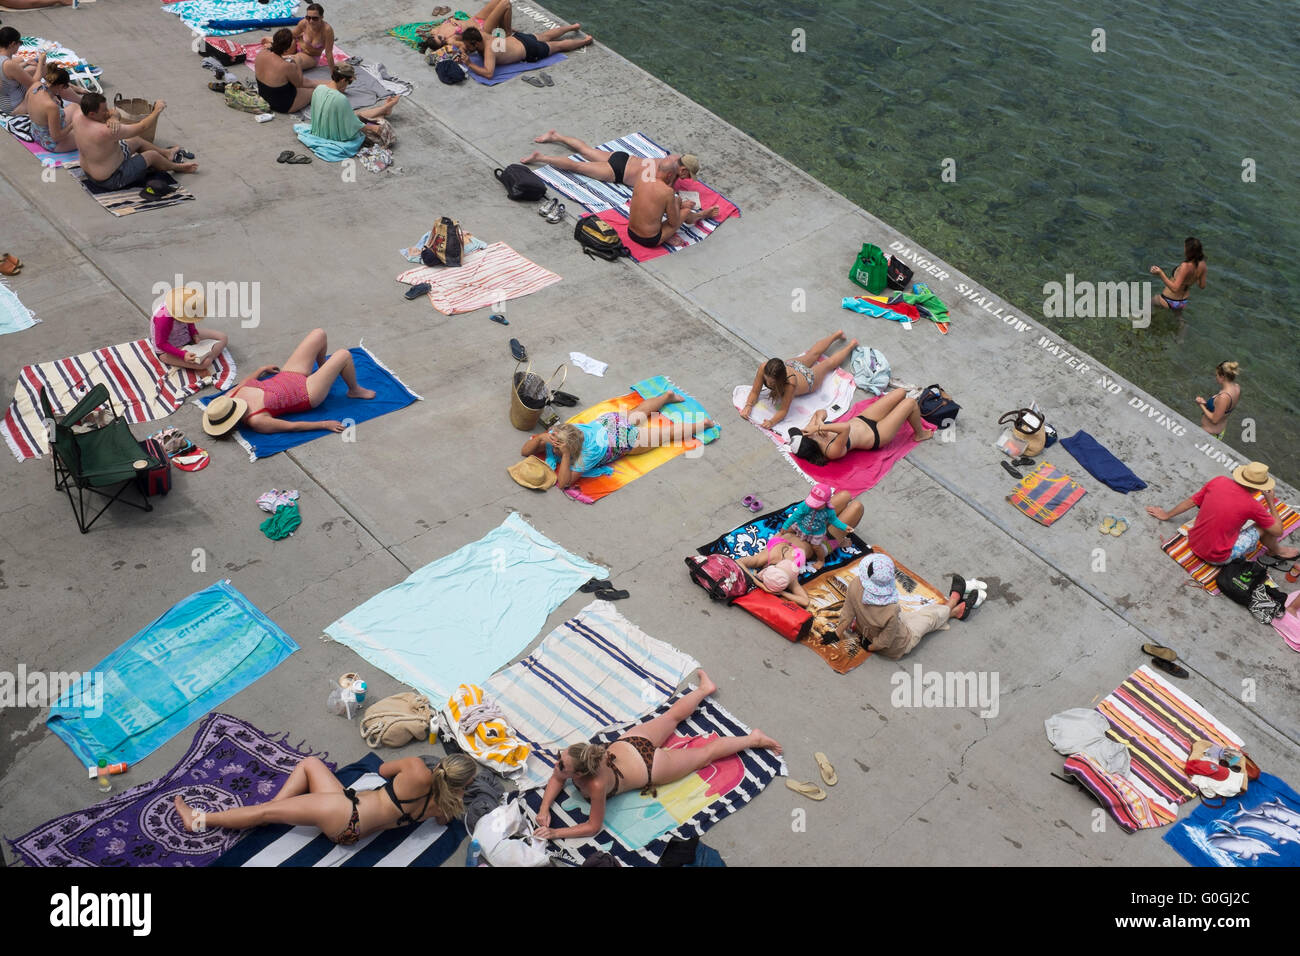 Aerial View Of Sunbathers At Wylie Baths In Sydney New South Wales Australia